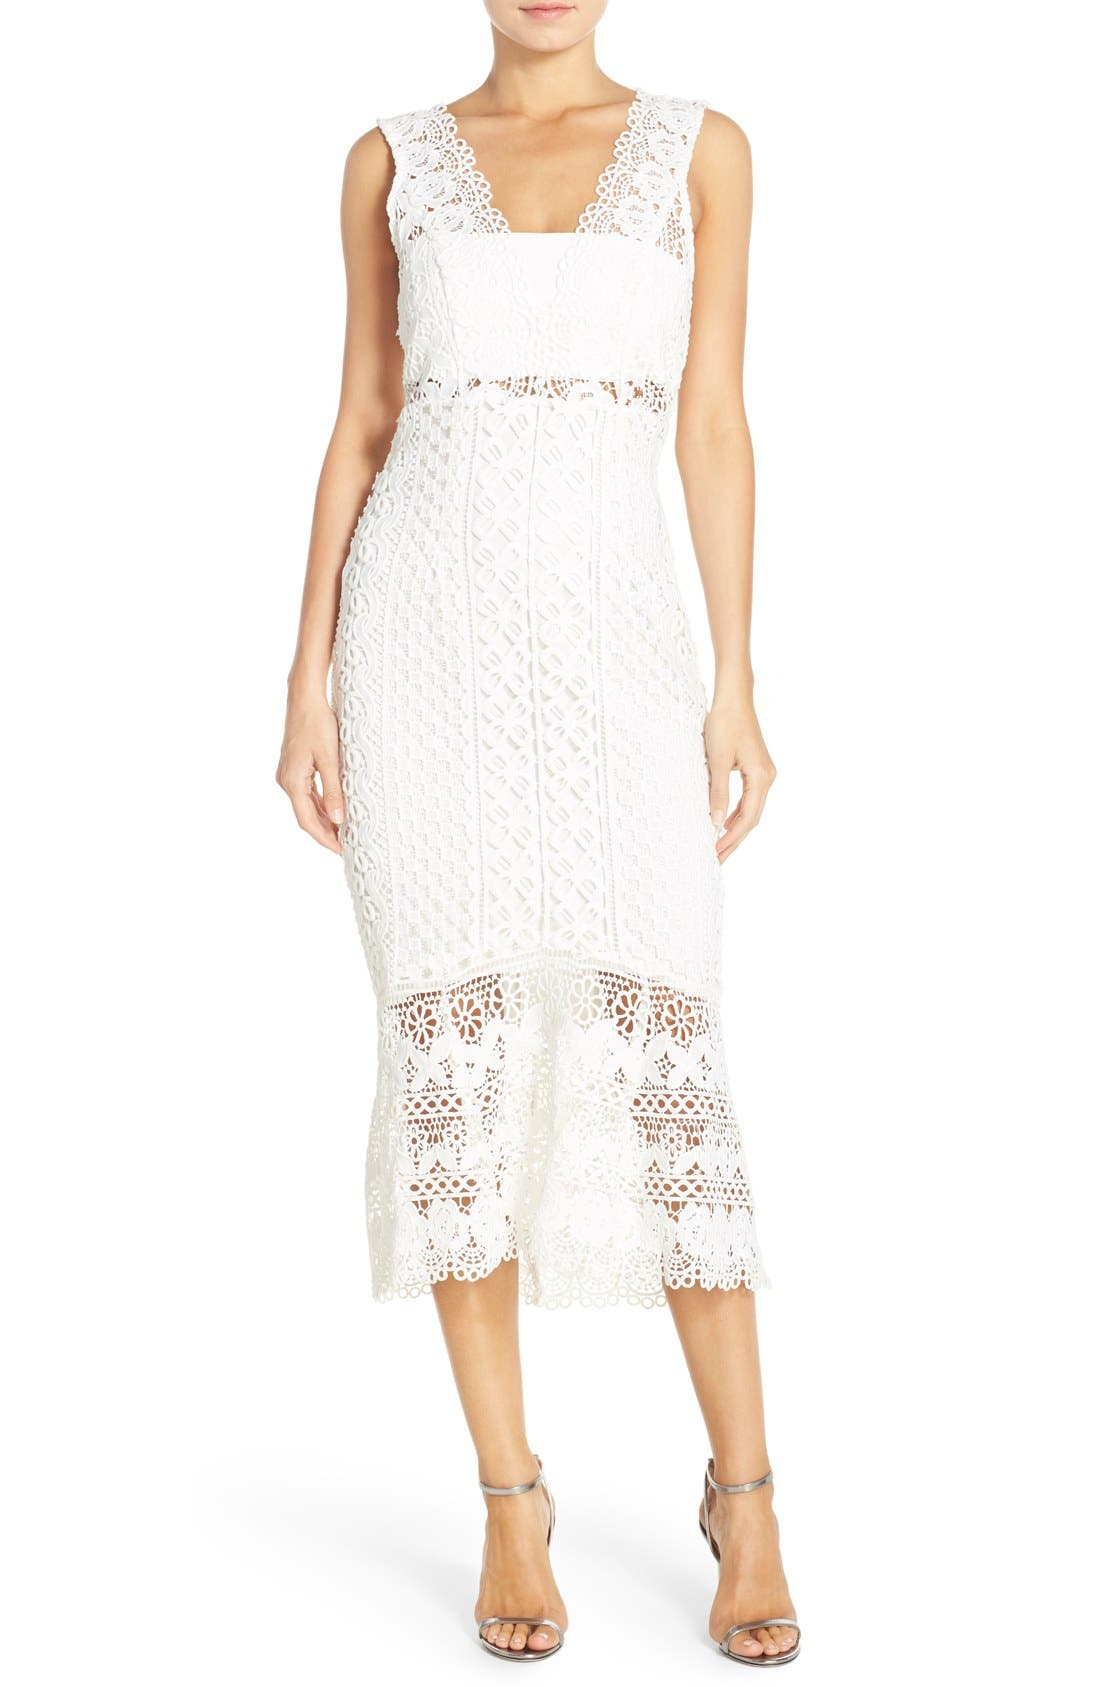 Odyssey Lace Midi Dress,                         Main,                         color, 110